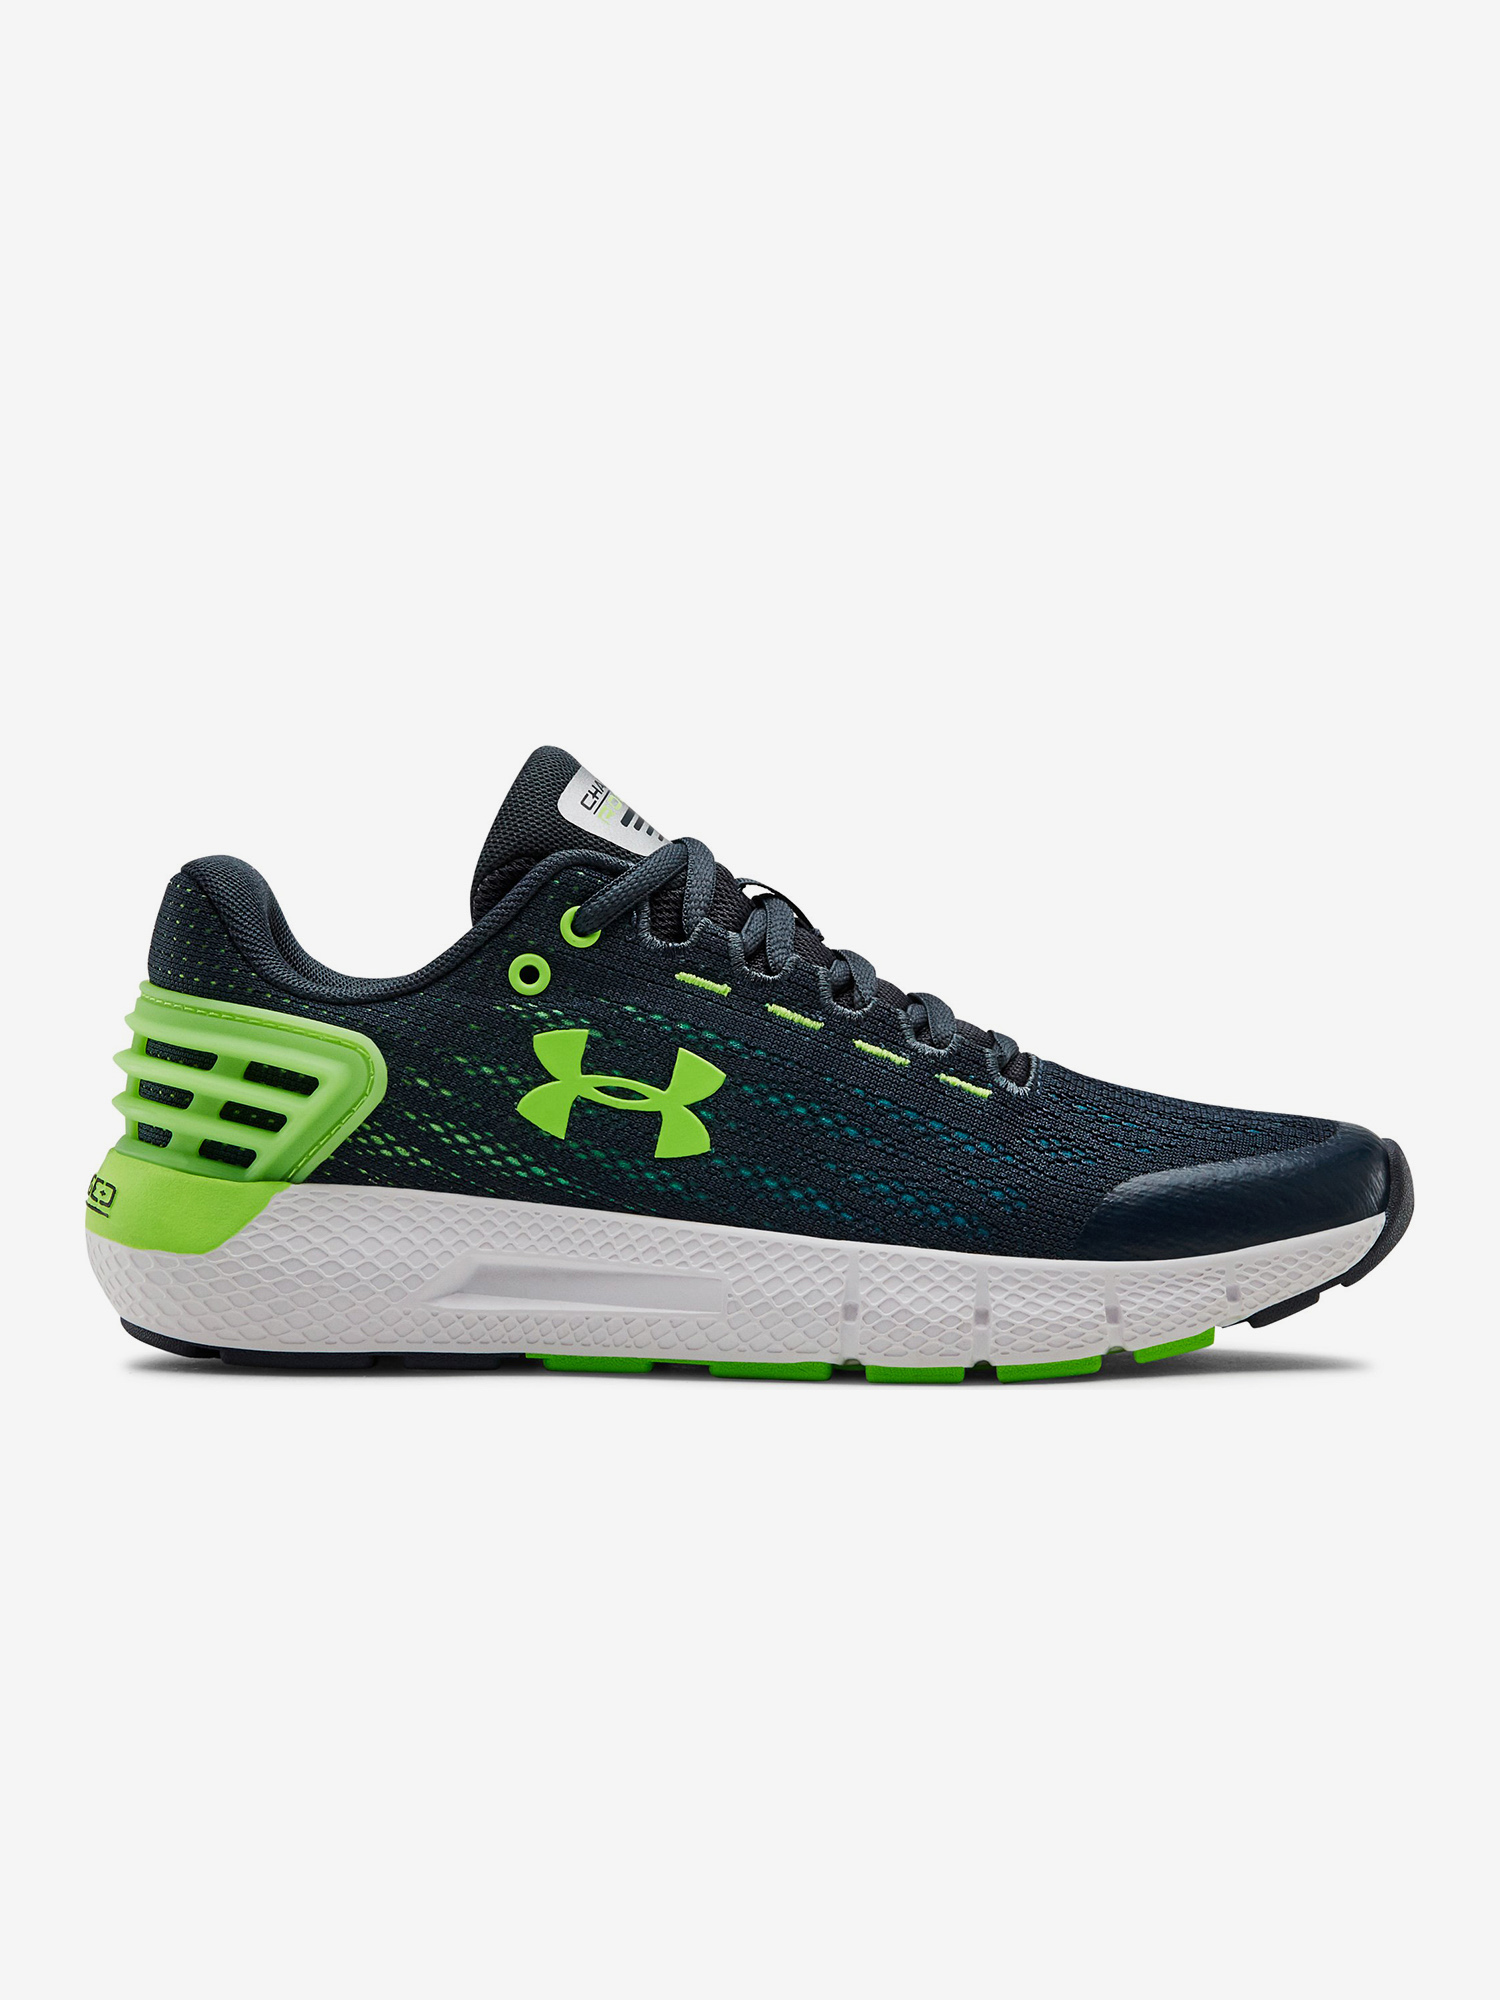 Boty Under Armour Bgs Charged Rogue-Gry